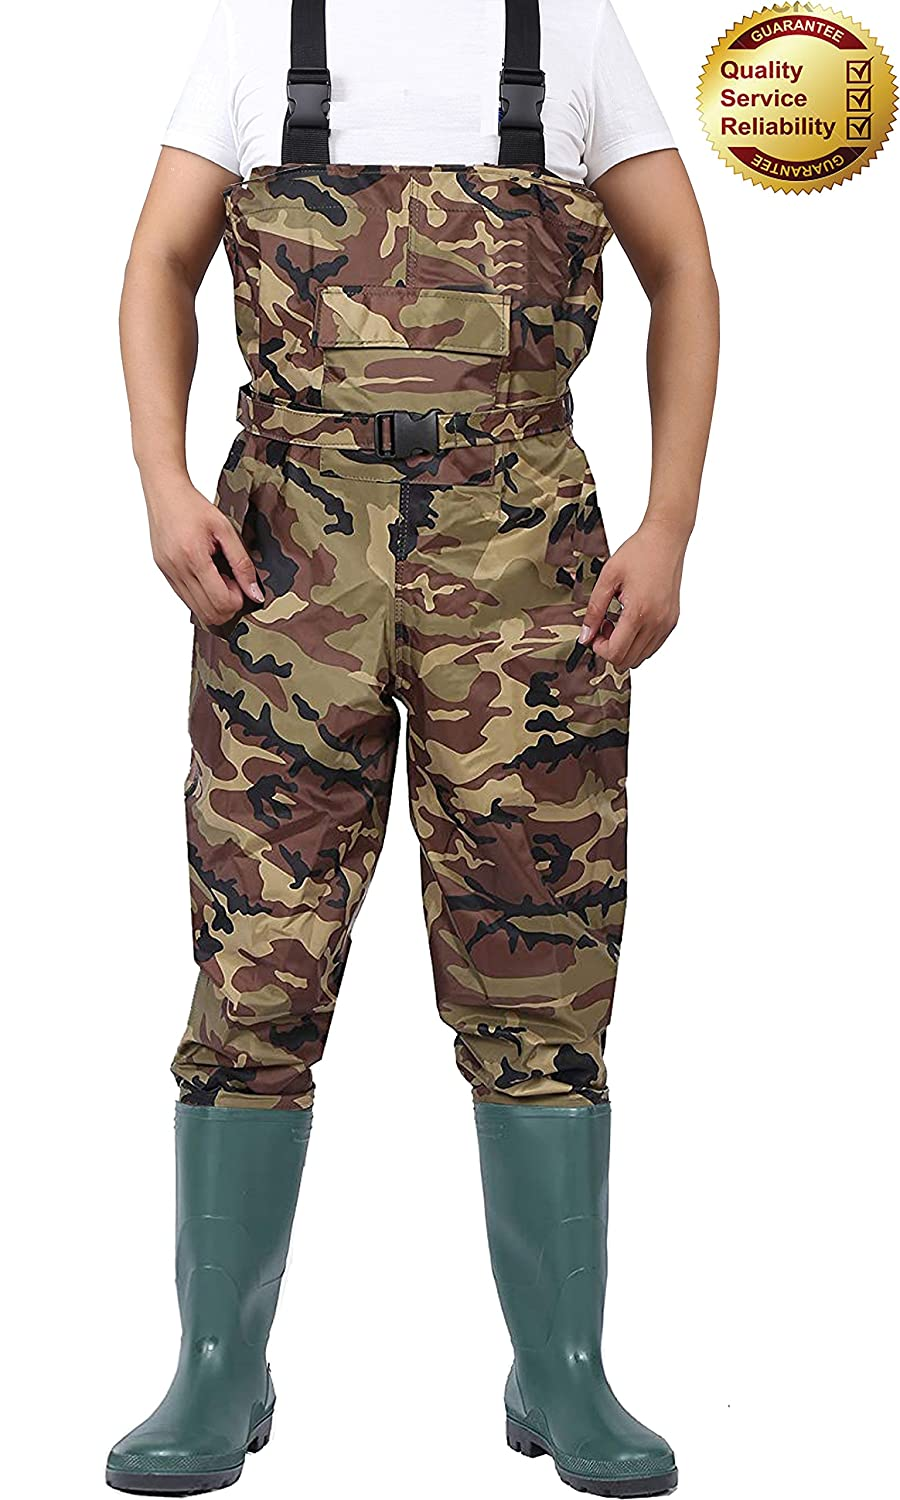 【ラッピング無料】 Wader Wader Chest Cleated釣りWaders for Men and and Women withブーツ、2層ナイロン/PVC Chest Wader防水Bootfoot軽量Waders Camo size14 B07D214F8F, 岩見沢市:f34dcb07 --- a0267596.xsph.ru